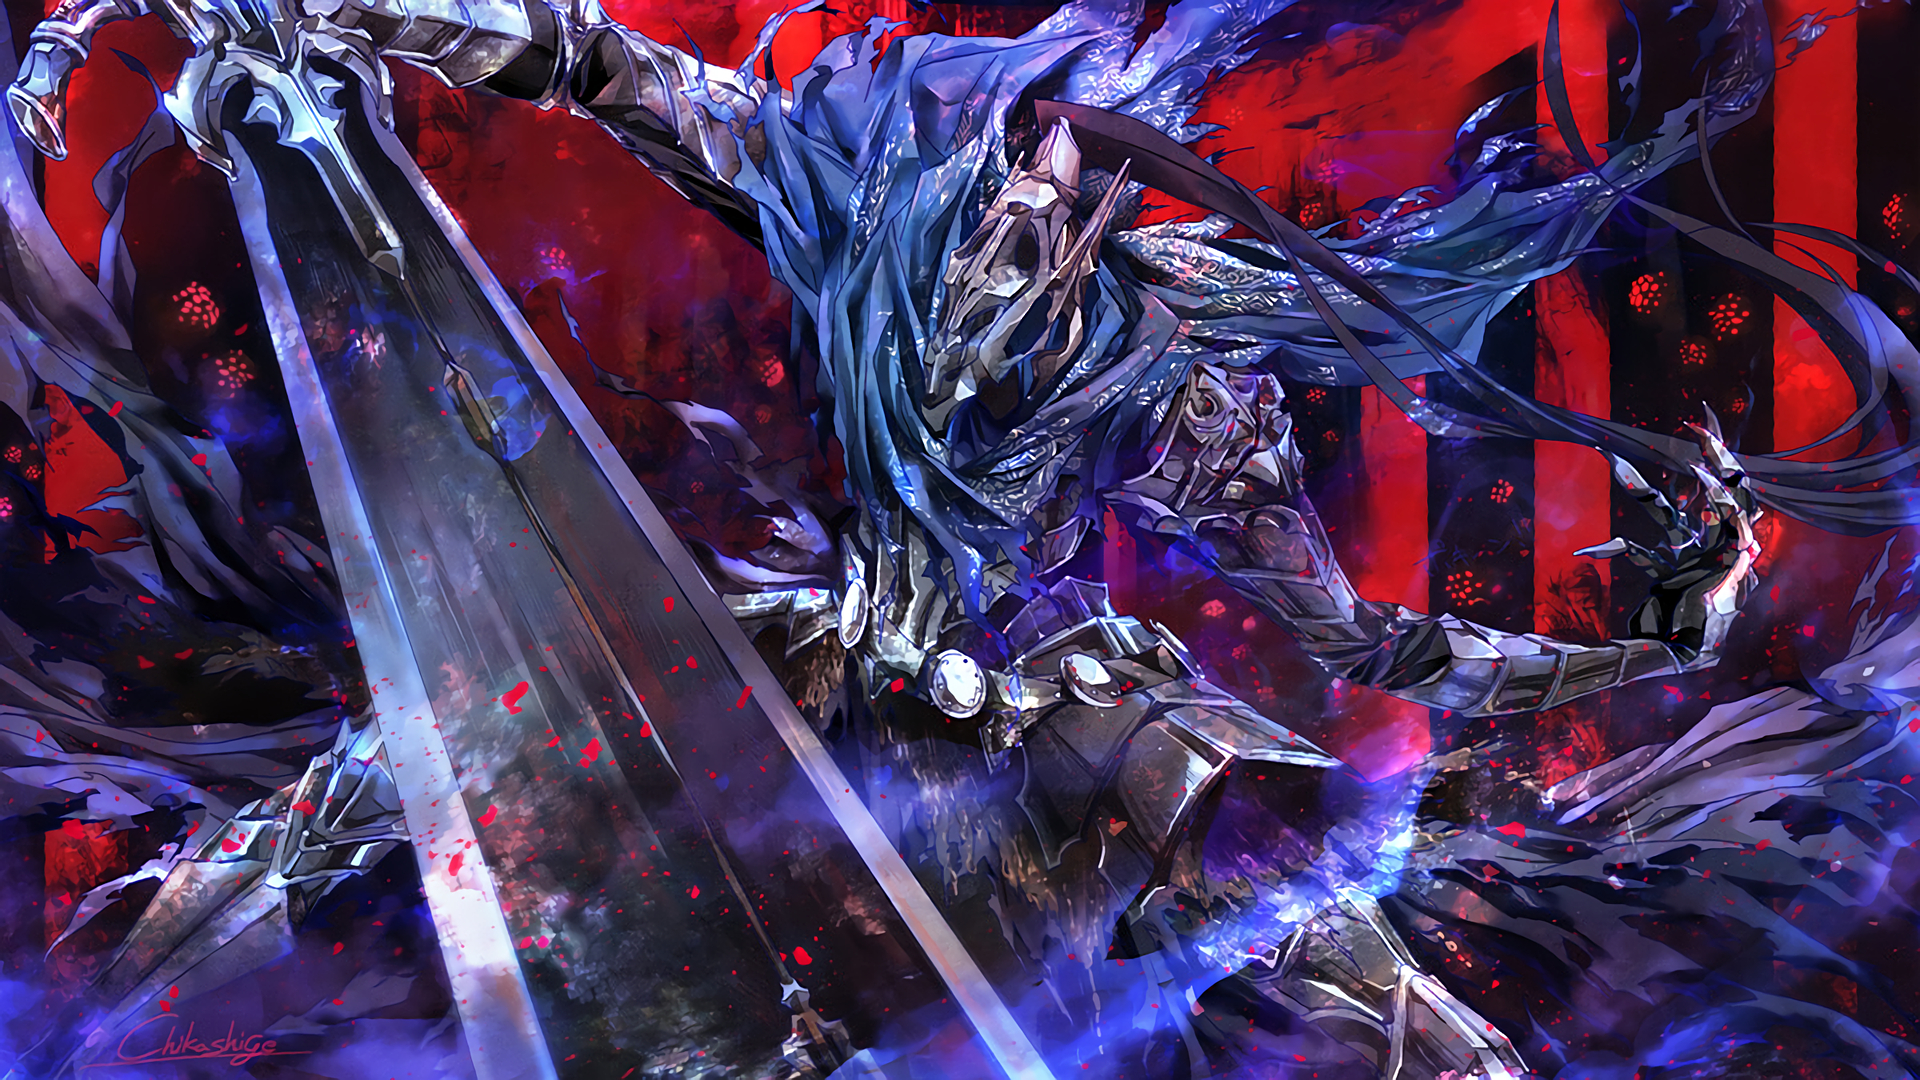 Dark souls wallpapers pictures images - Hd wallpapers of darkness ...